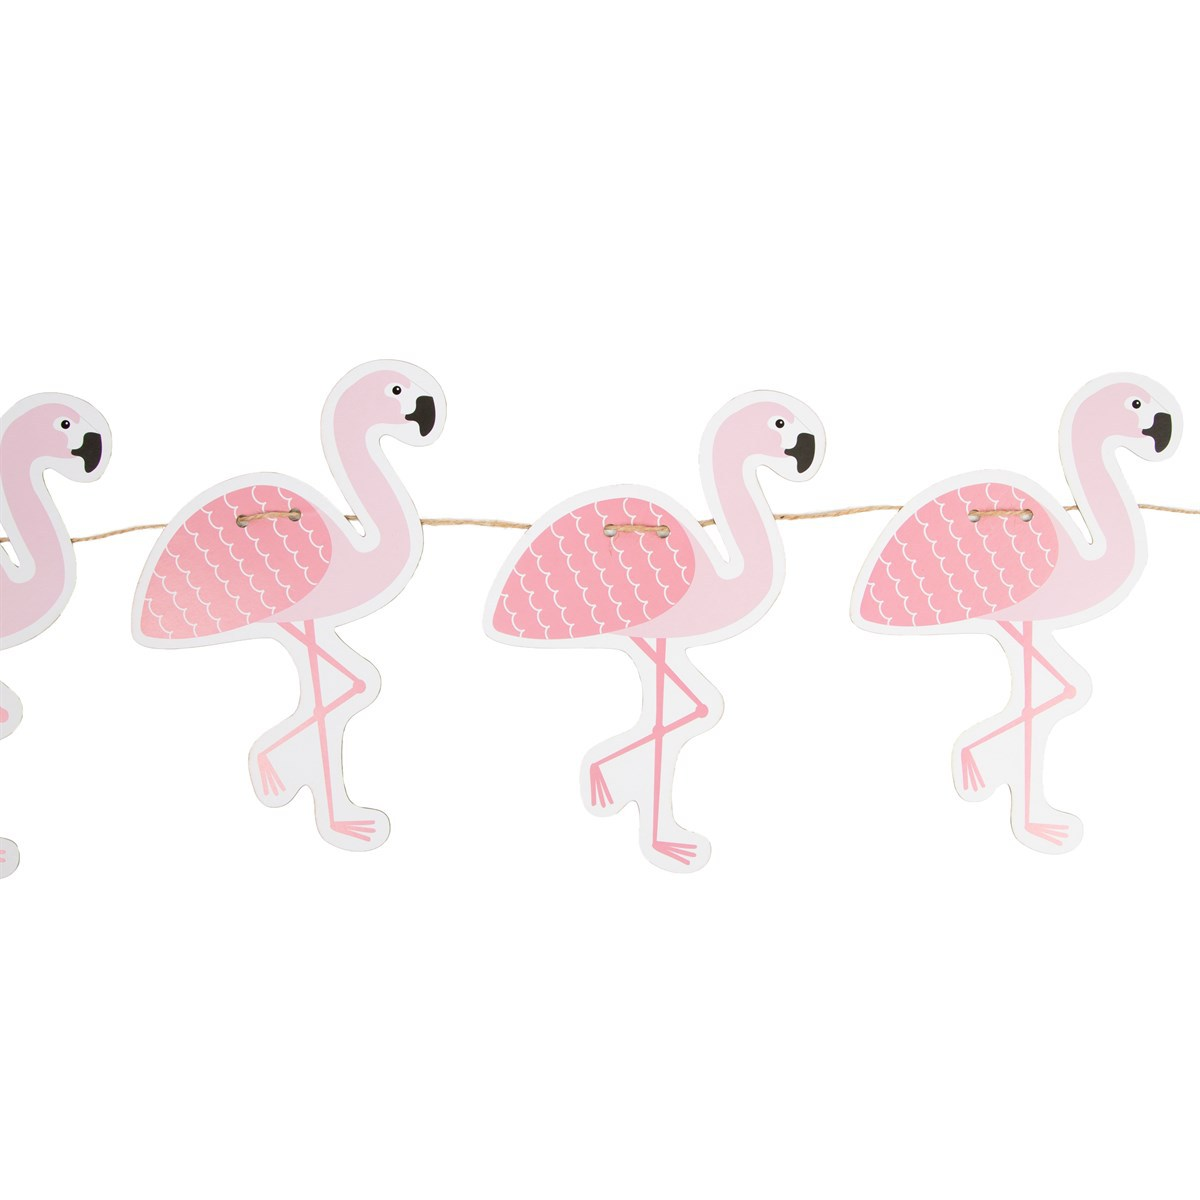 Objet décoration Guirlande Papier Flamants Roses Tropical Summer Guirlande Papier Flamants Roses Tropical Summer